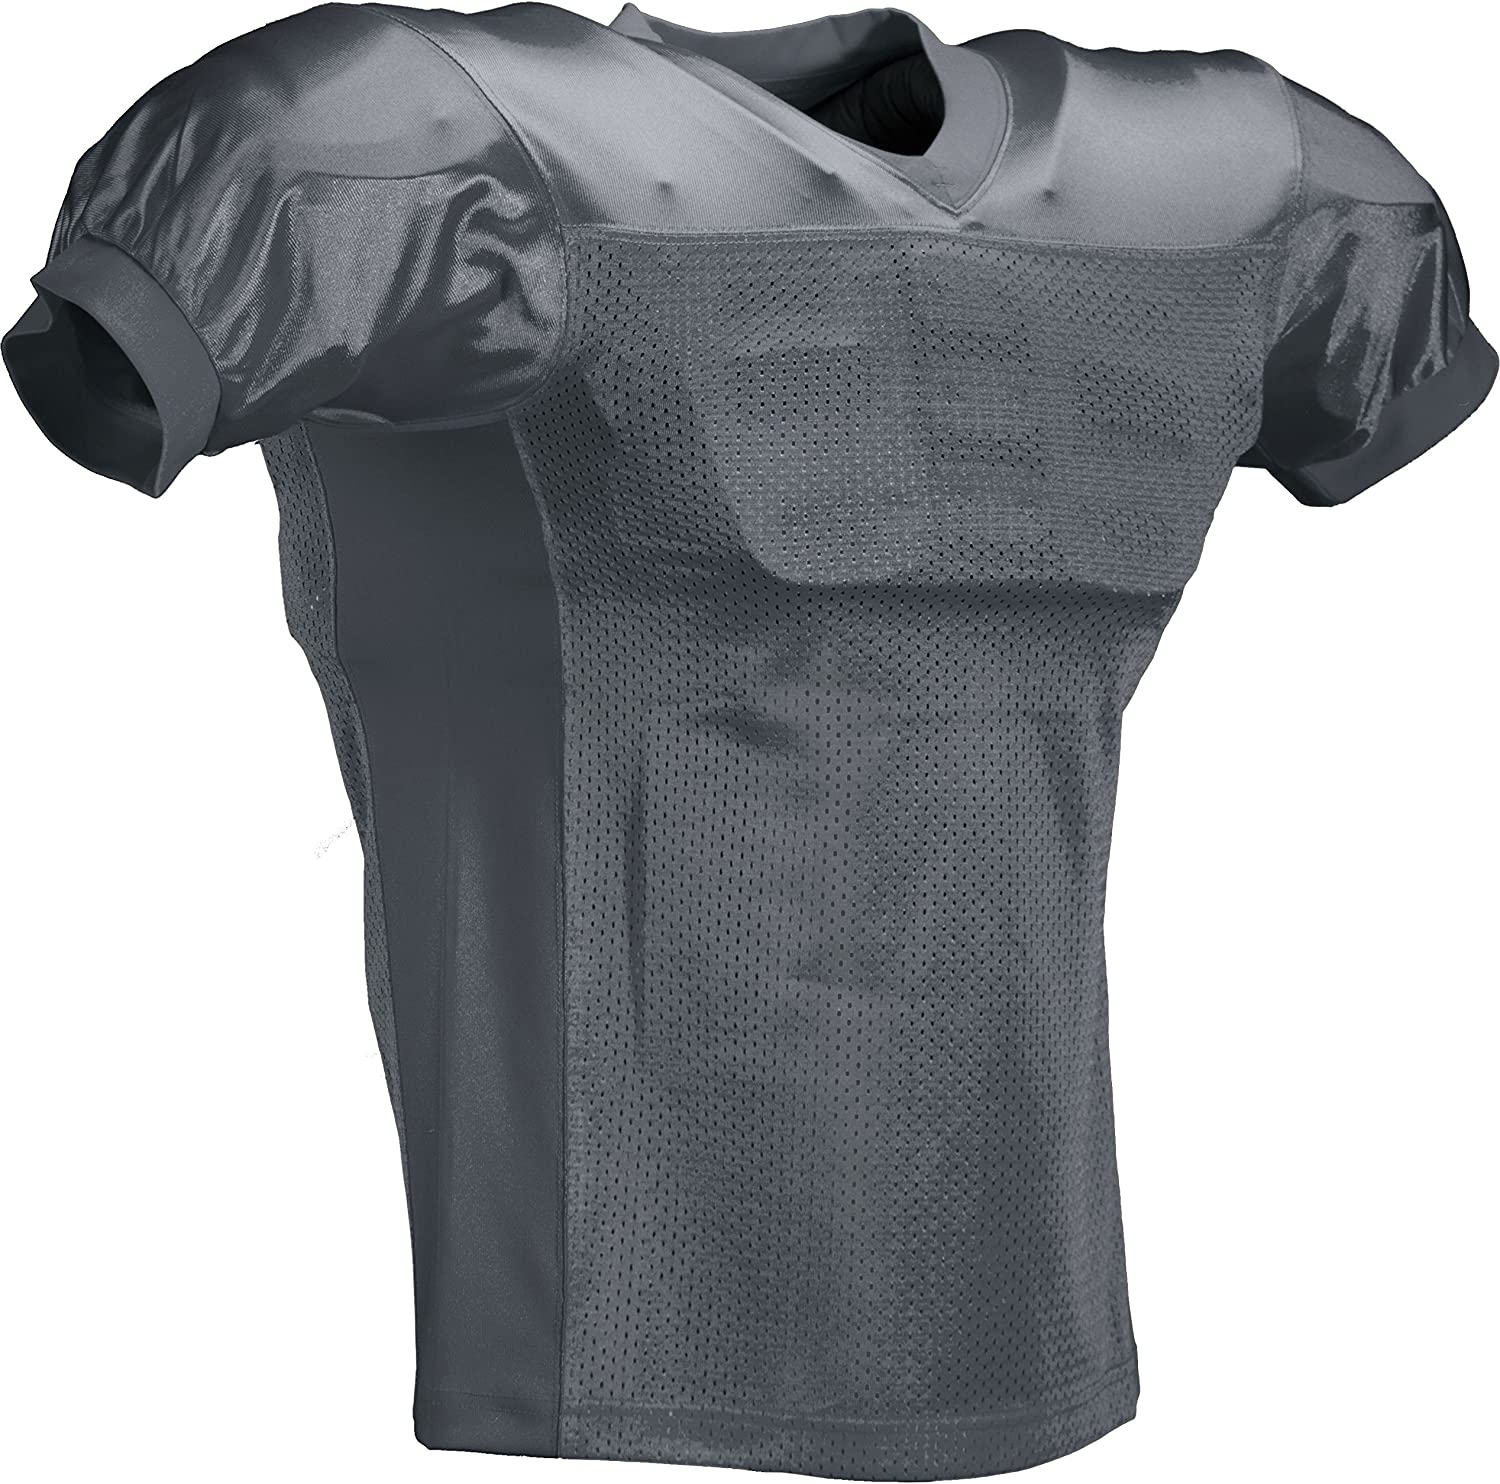 Details about  /Football America Adult Game Jersey